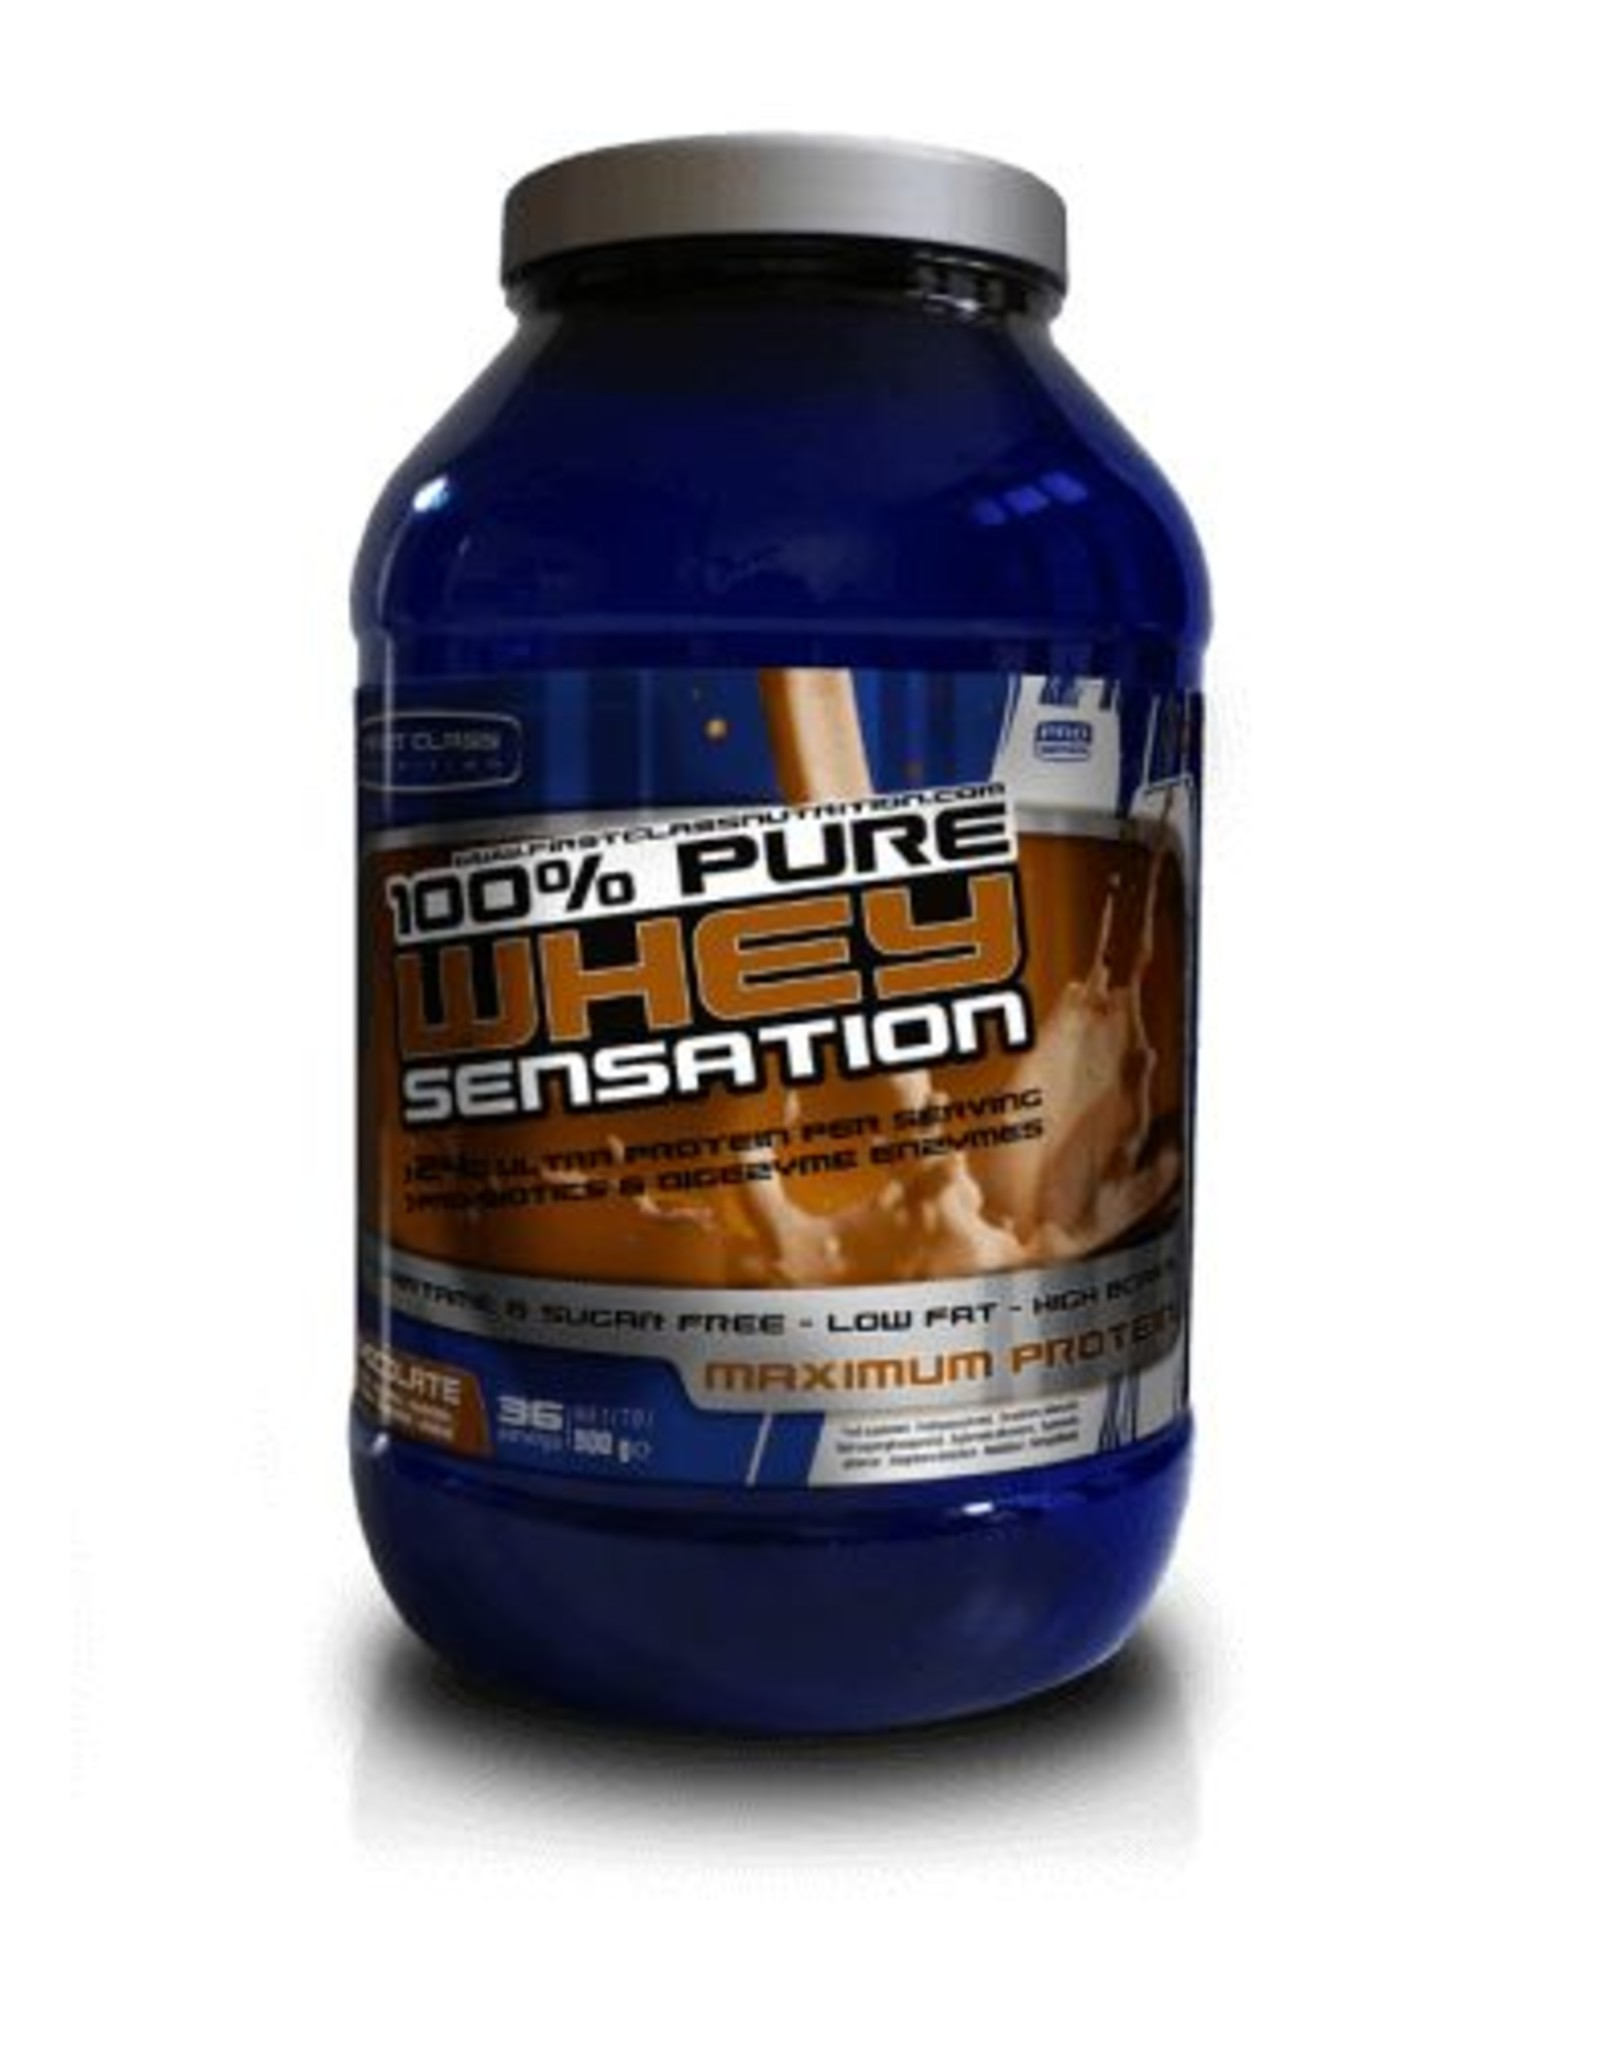 First class nutrition Whey sensation chocolat